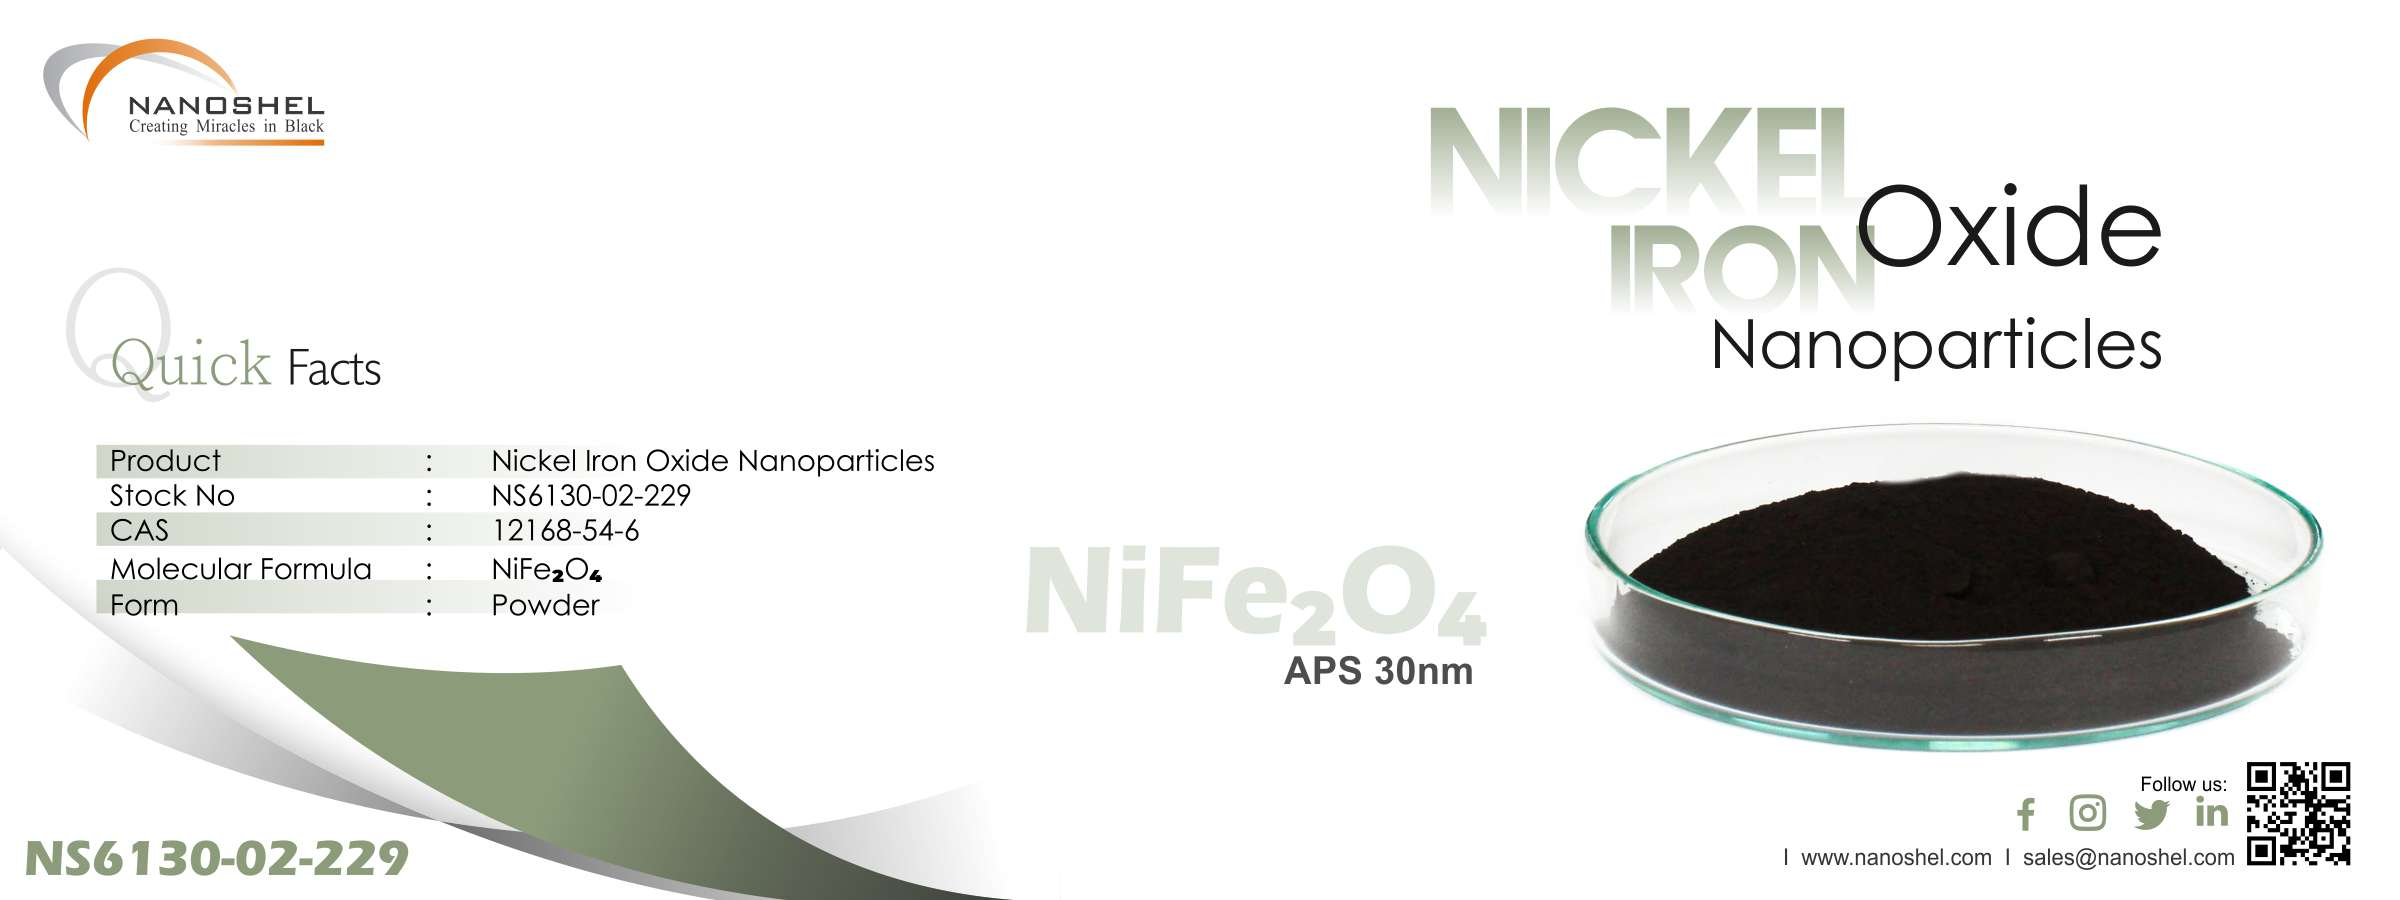 Nickel Iron Oxide Nanoparticles